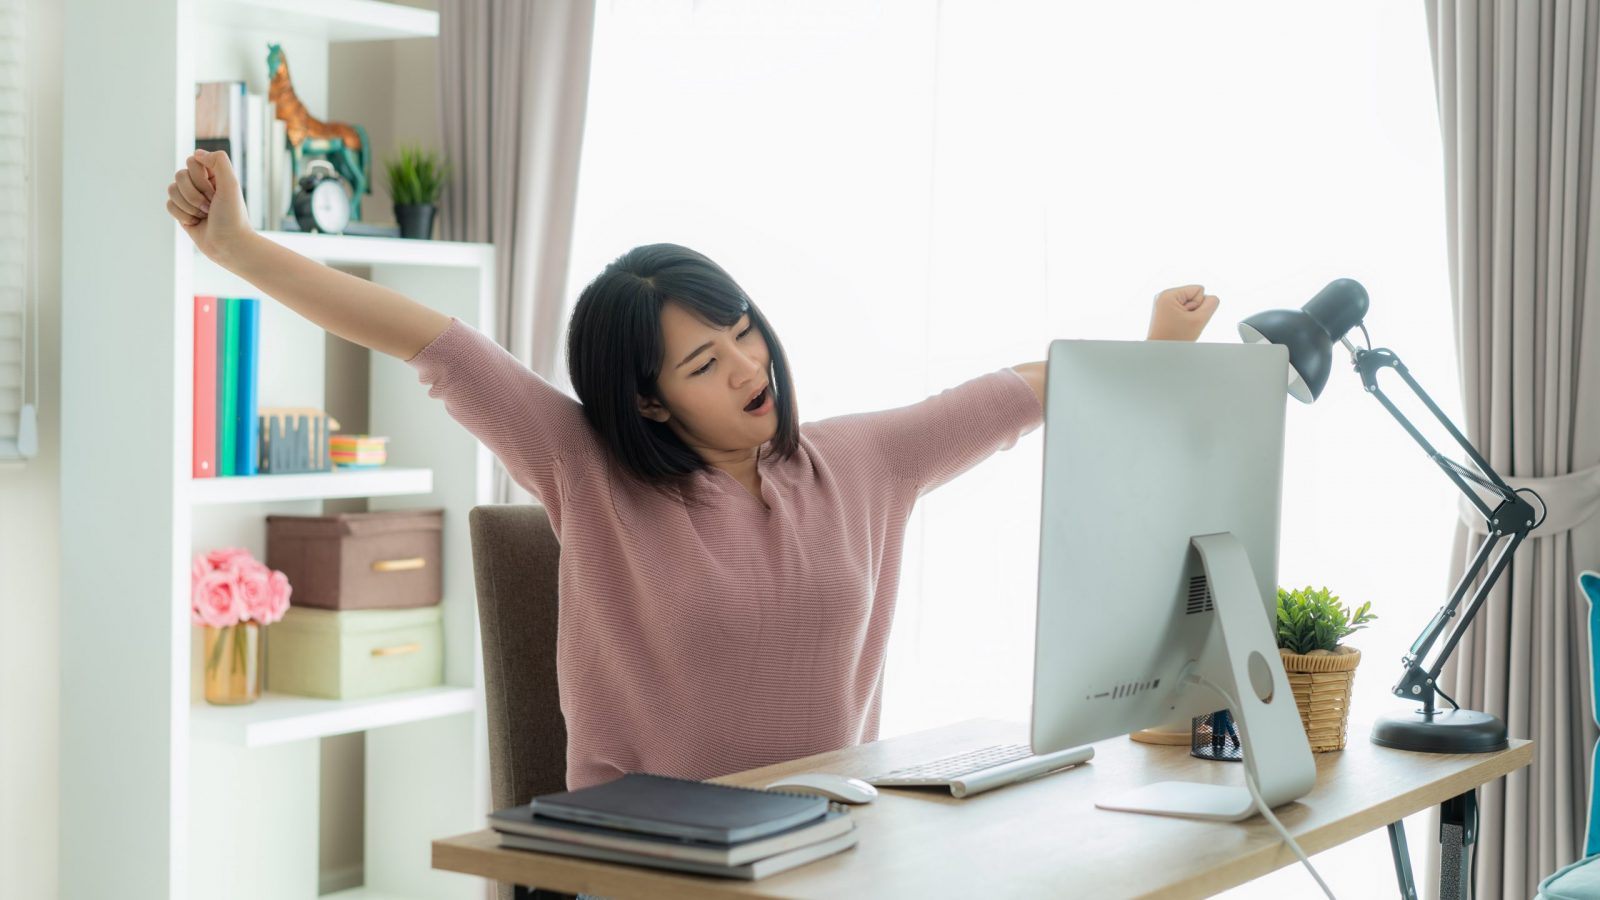 Woman stretching at computer